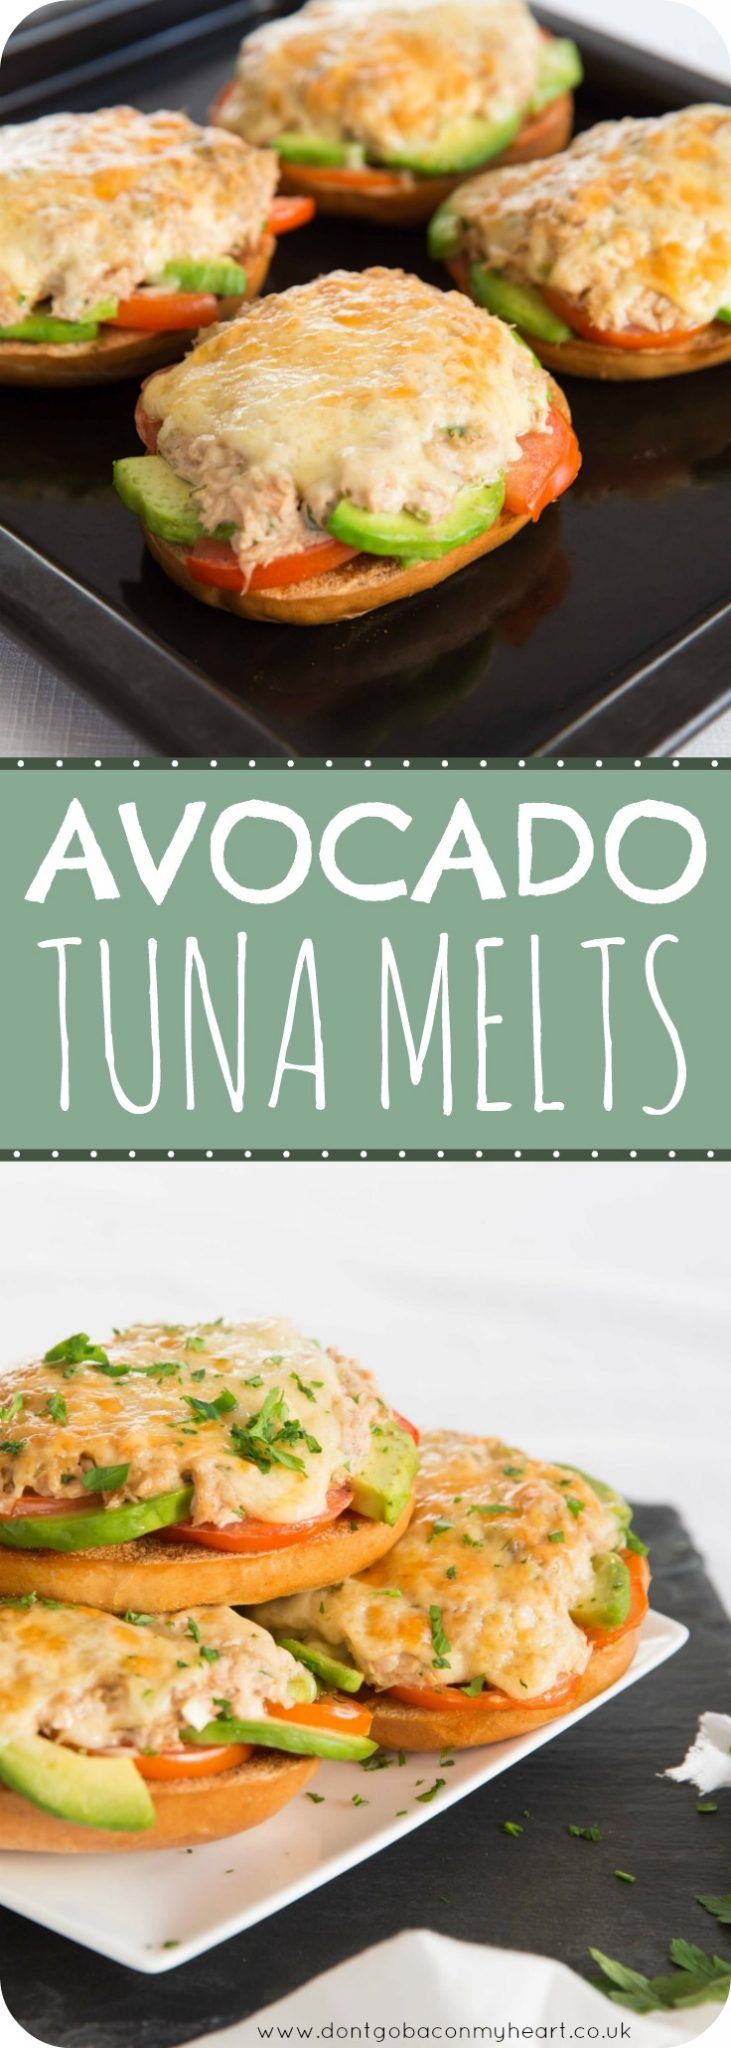 Avocado Tuna Melt Pin